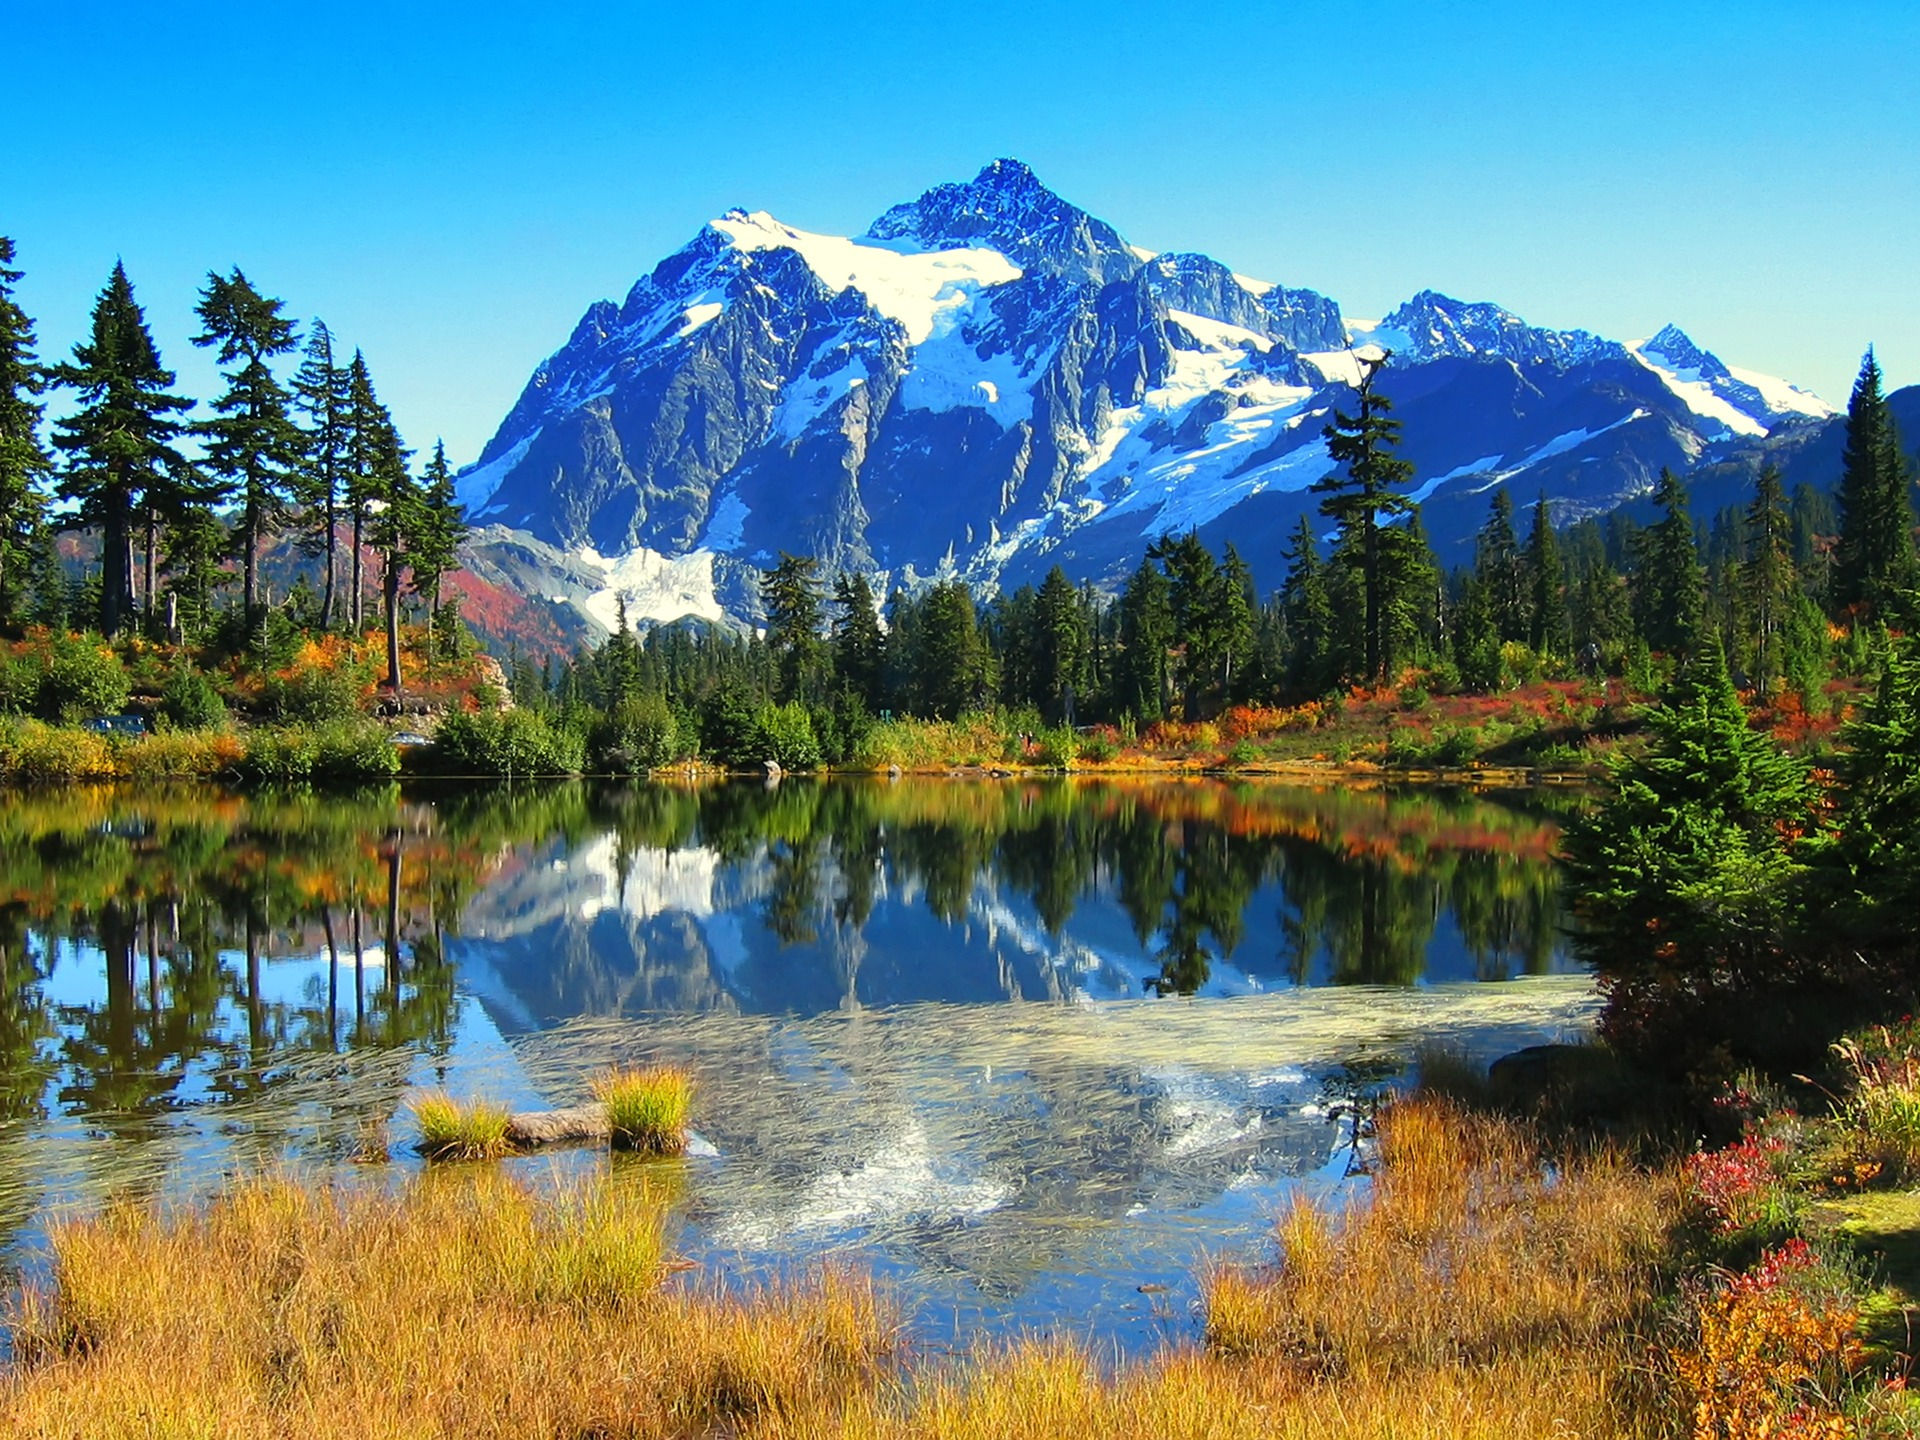 picture lake wallpaper landscape nature wallpapers in jpg format for